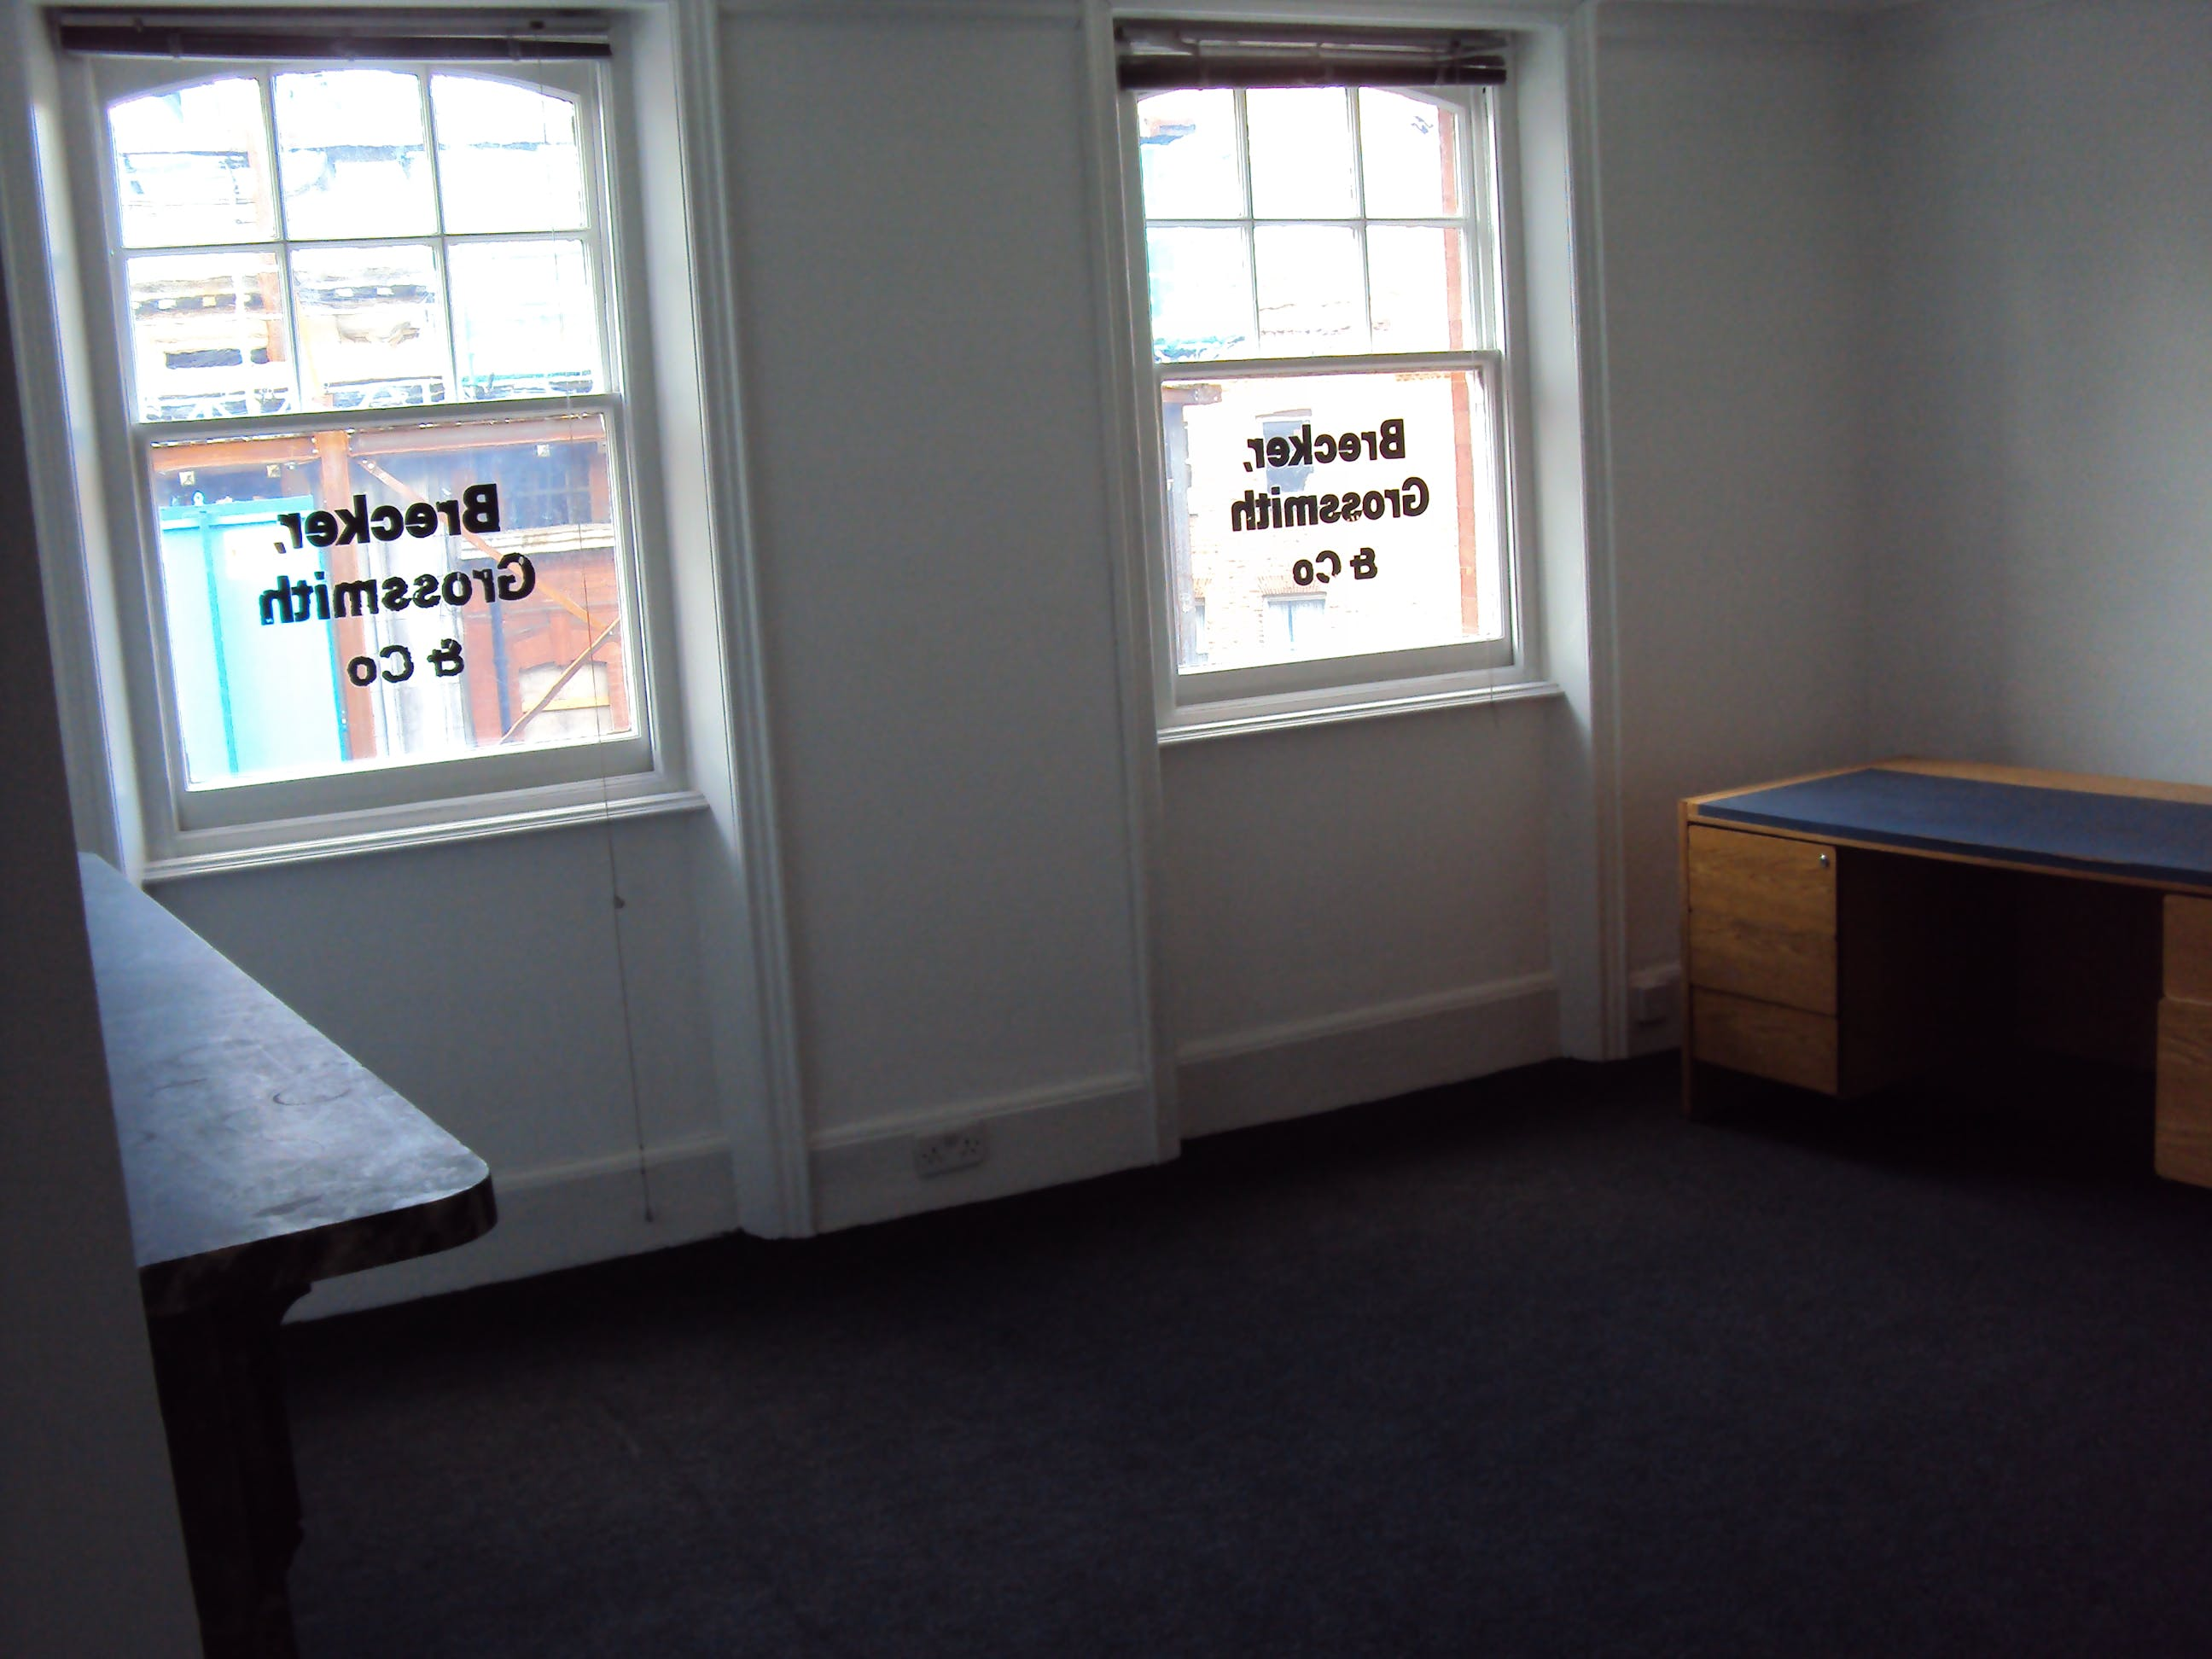 3rd Floor Office, 63 Wigmore Street, London, Office To Let - 63 wigmore st 200 sq ft.JPG